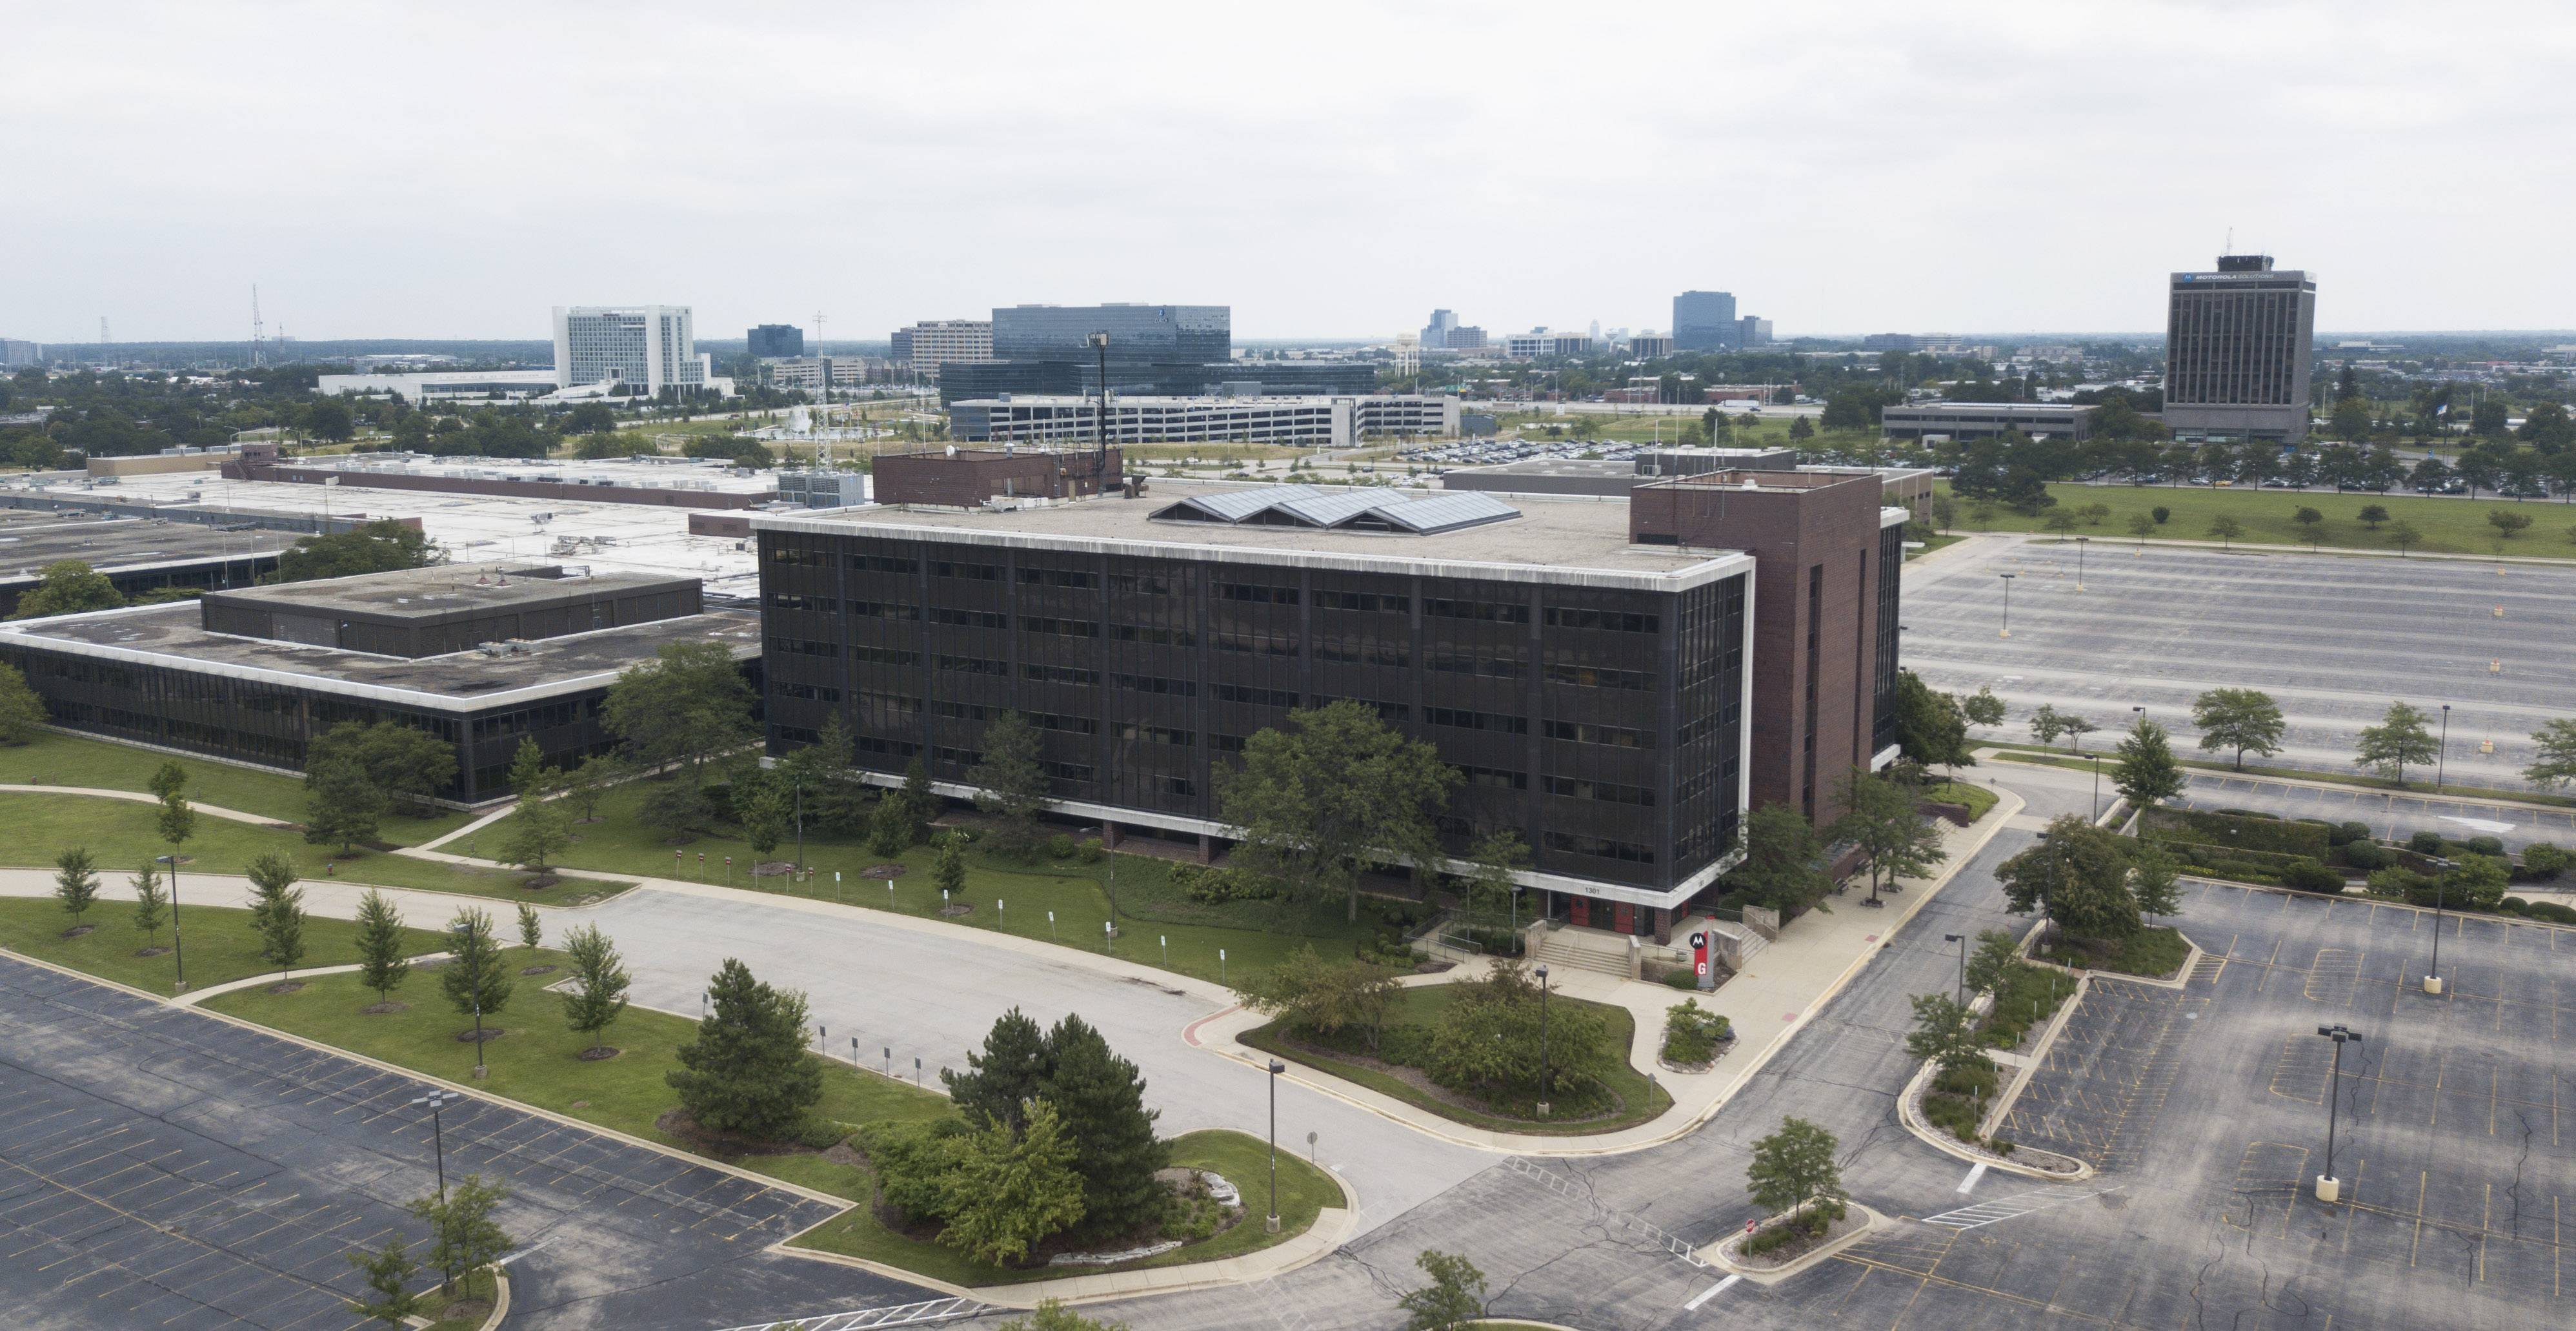 Traffic moves along Algonquin Road in Schaumburg, near the former Motorola Solutions campus, which is a proposed site for retail giant Amazon's second headquarters.